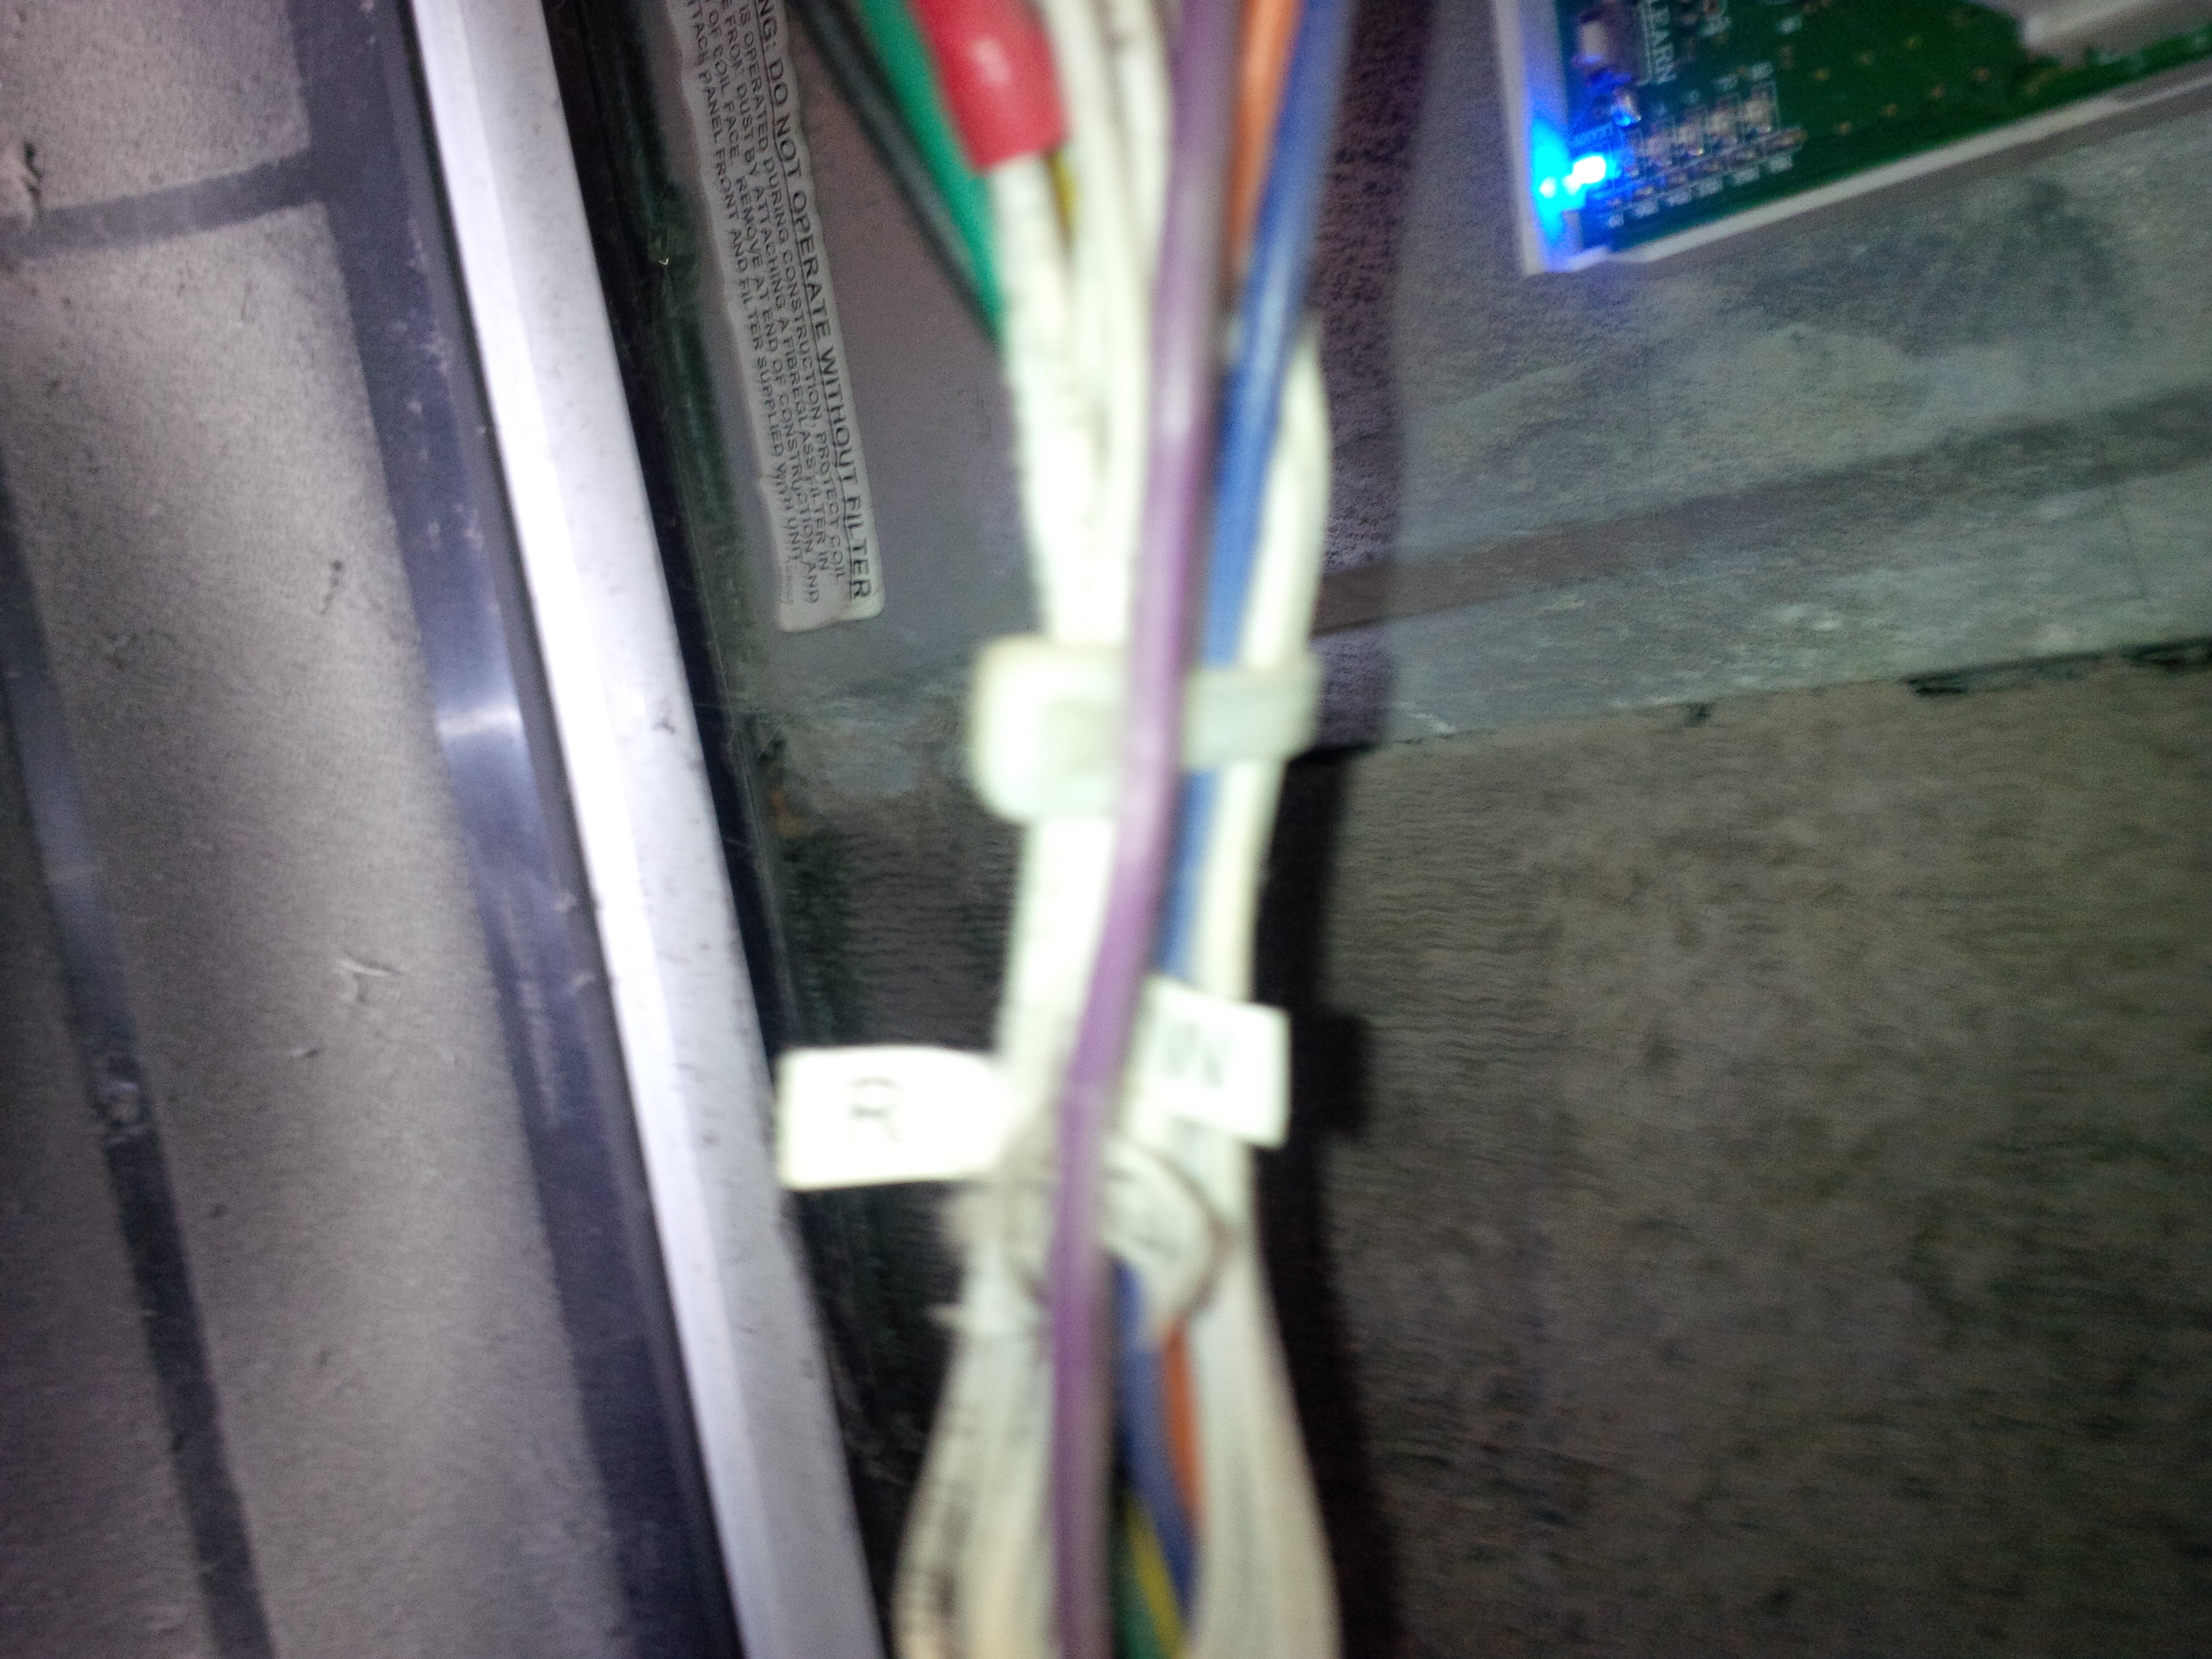 I have an electric heater/ac unit, with a Pro1 thermostat. Last ...